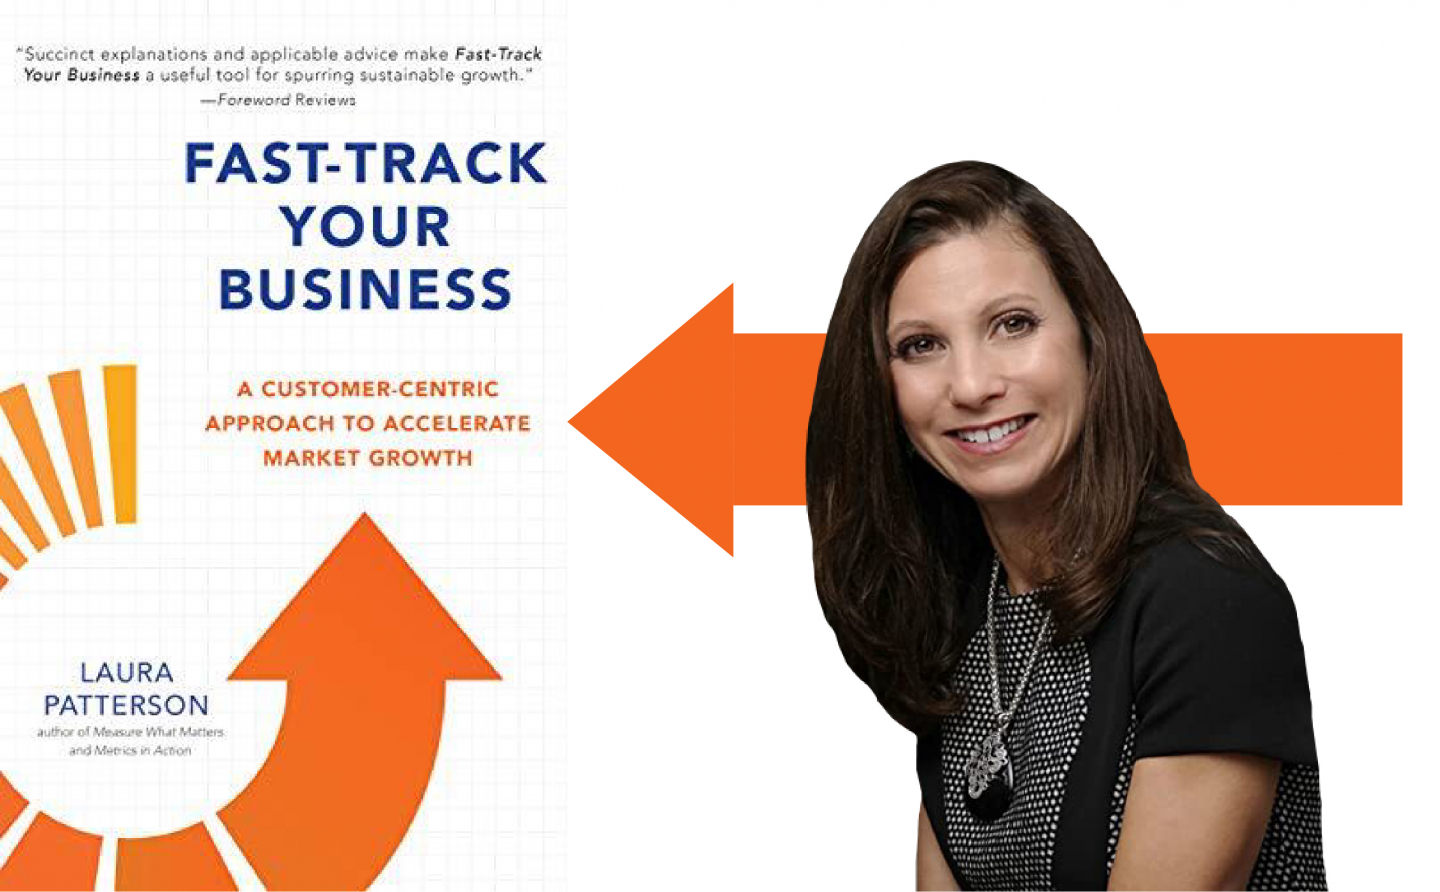 DGR Book Club: Author Laura Patterson Shares Fundamentals Of Customer-Centricity, Inspiration Behind New Book On Growth